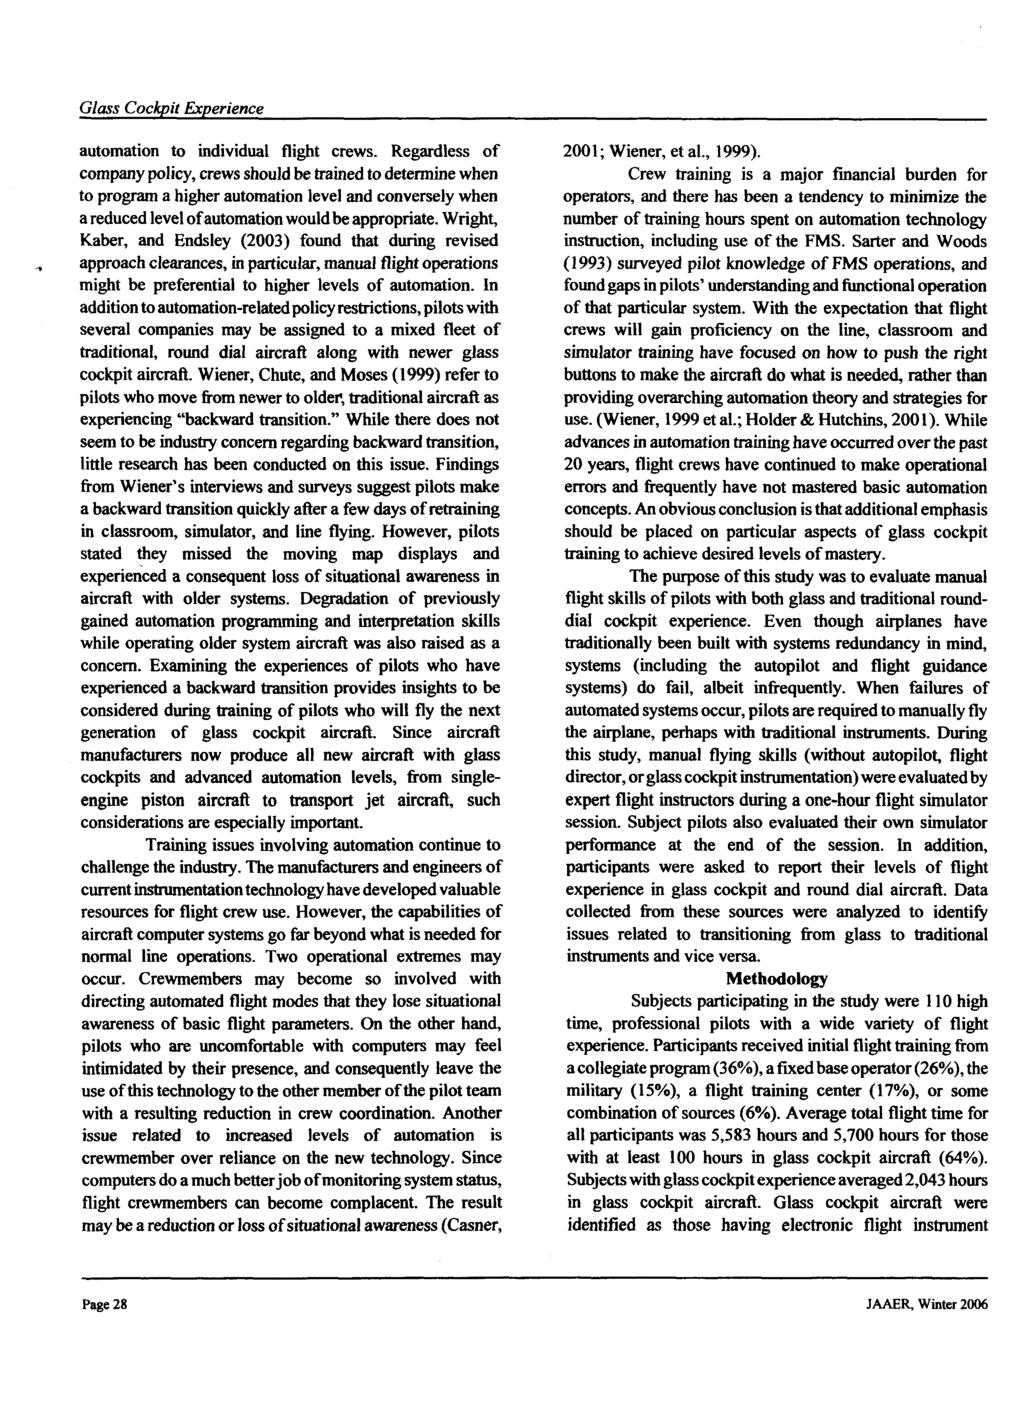 Journal of Aviation/Aerospace Education & Research, Vol. 15, No. 2 [2006], Art. 5 automation to individual flight crews.